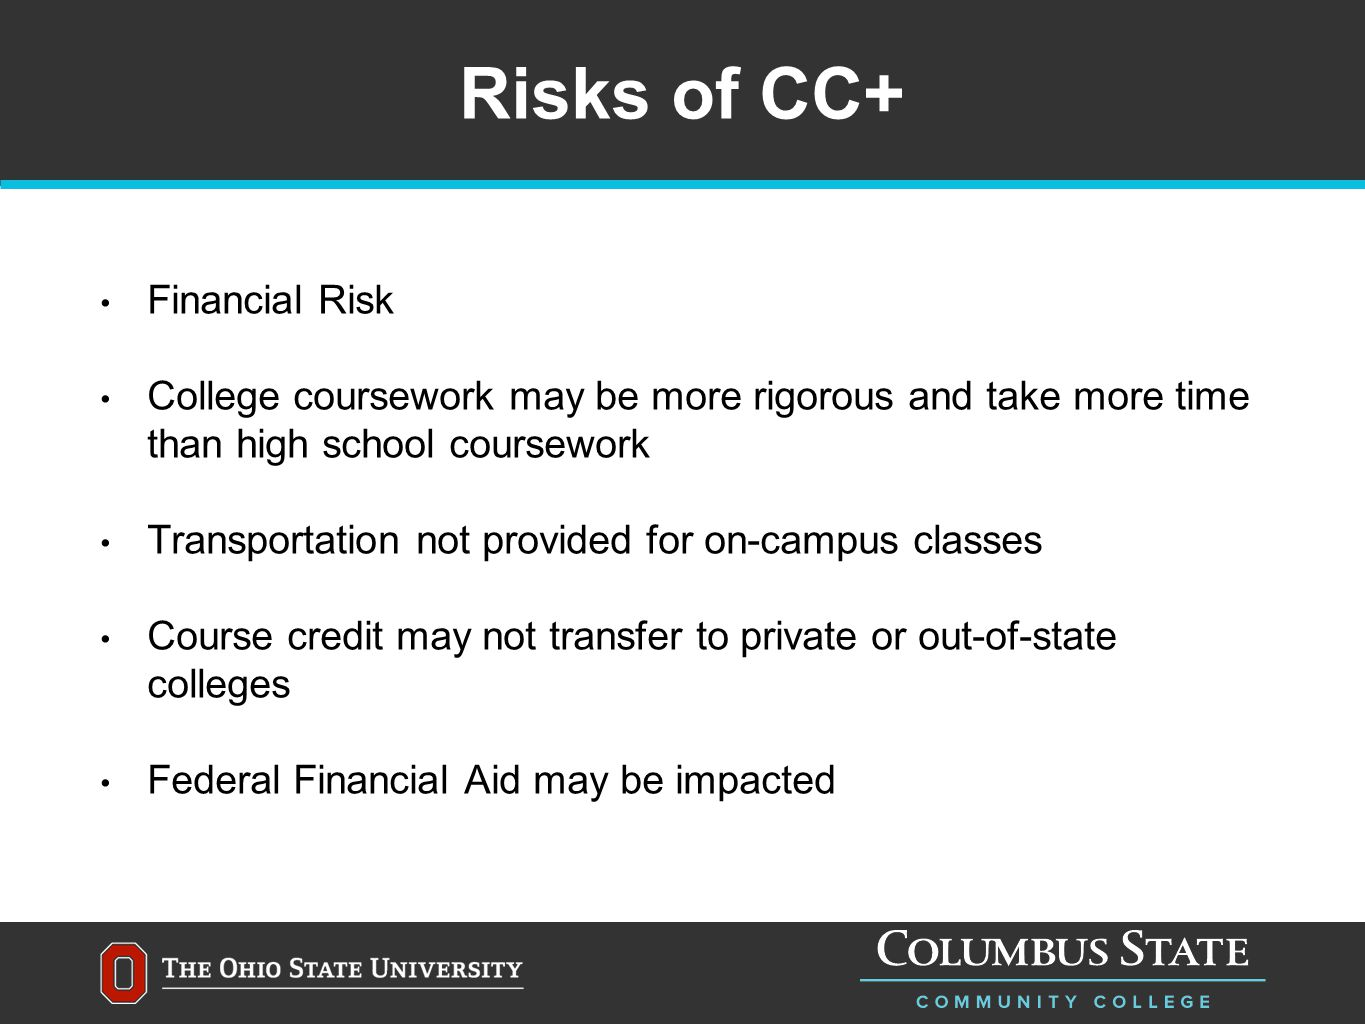 Risks of CC+ Financial Risk College coursework may be more rigorous and take more time than high school coursework Transportation not provided for on-campus classes Course credit may not transfer to private or out-of-state colleges Federal Financial Aid may be impacted